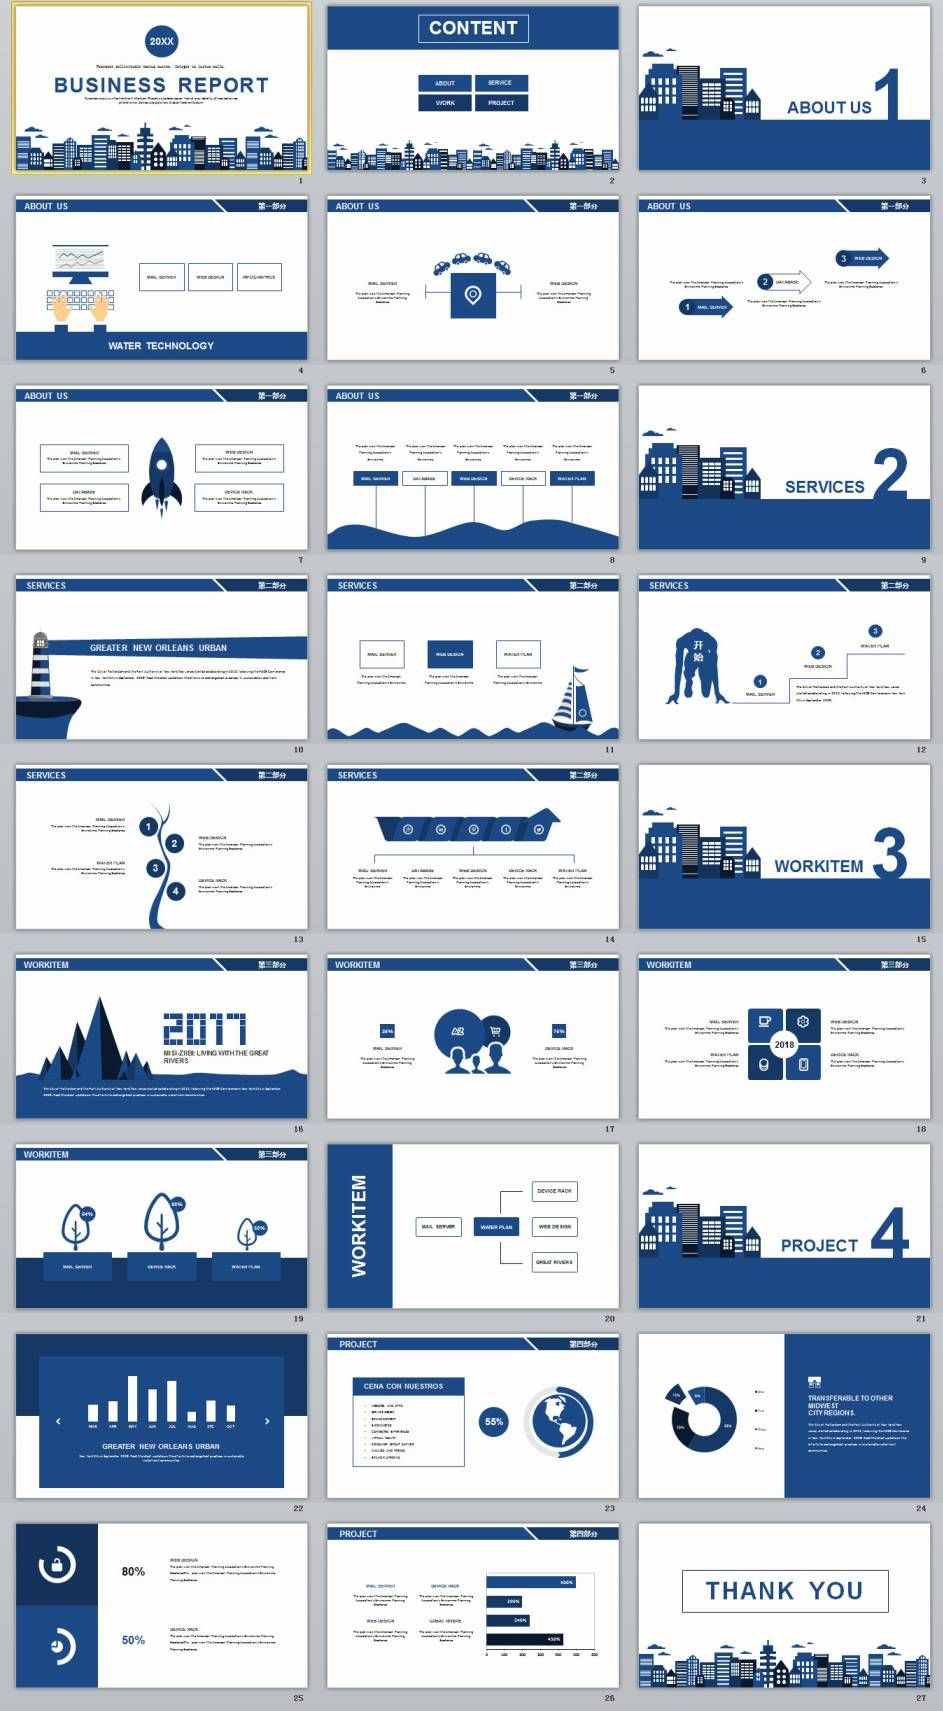 27 blue simple business report powerpoint templates template 27 blue simple business report powerpoint templates flashek Choice Image